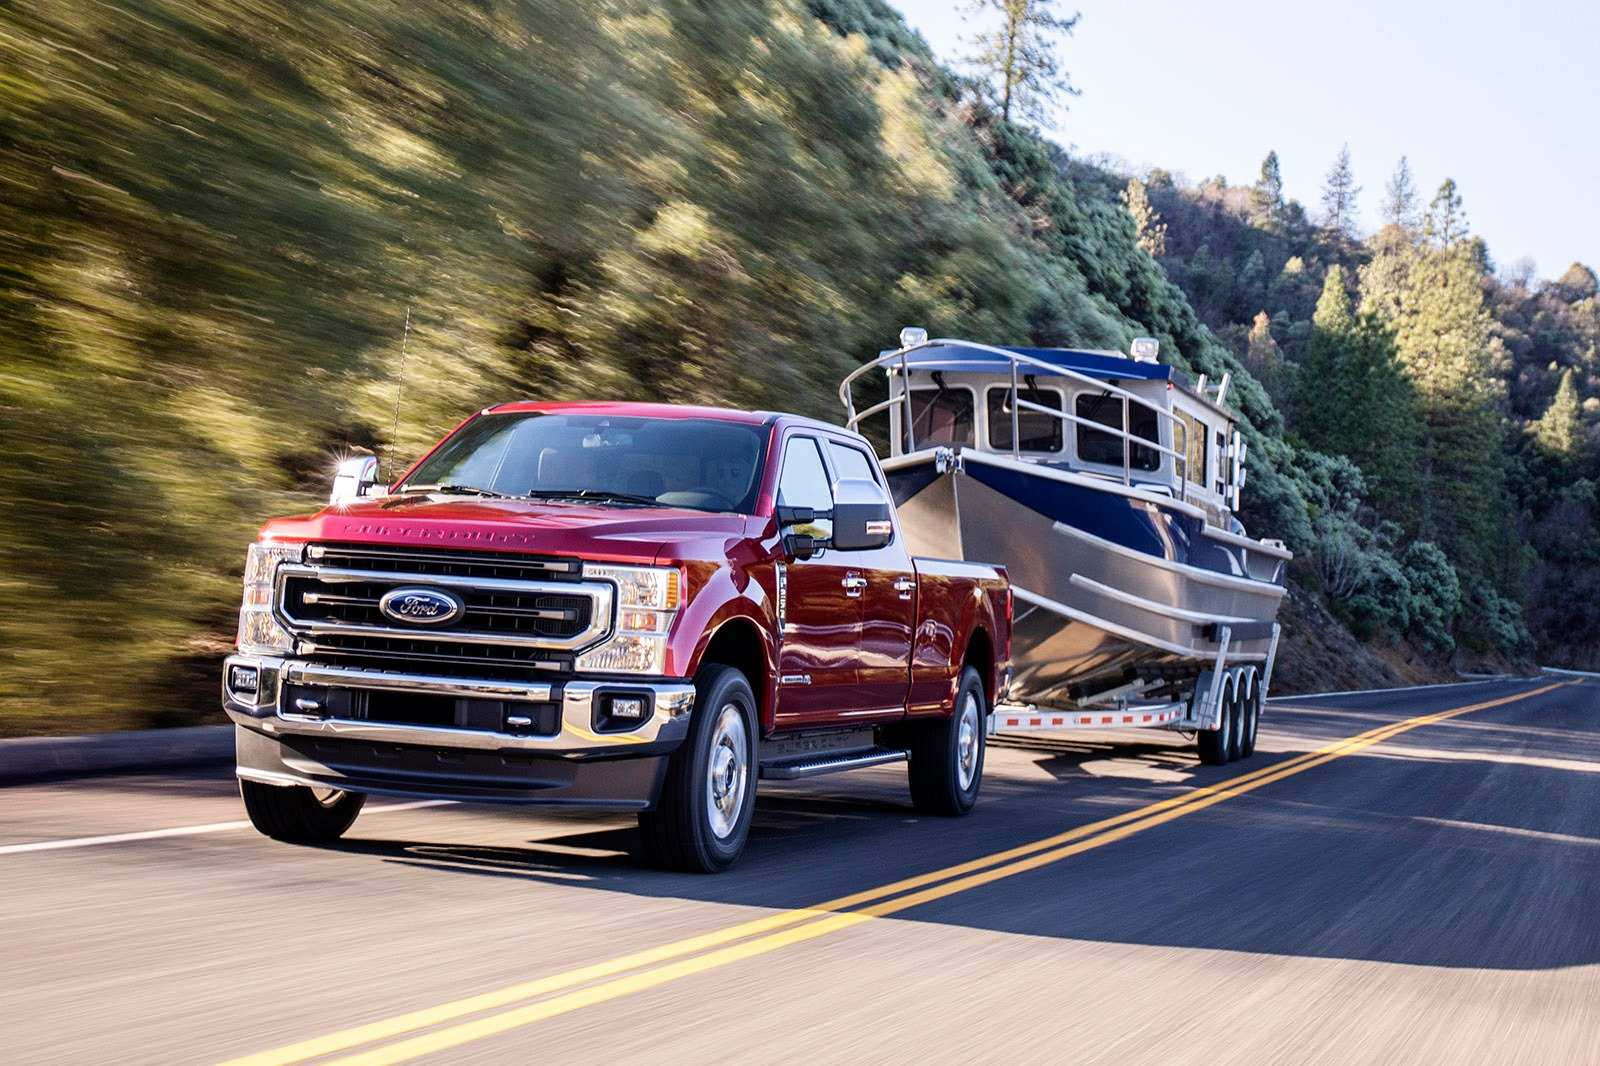 46 Concept of 2020 Ford F 150 Diesel Overview by 2020 Ford F 150 Diesel